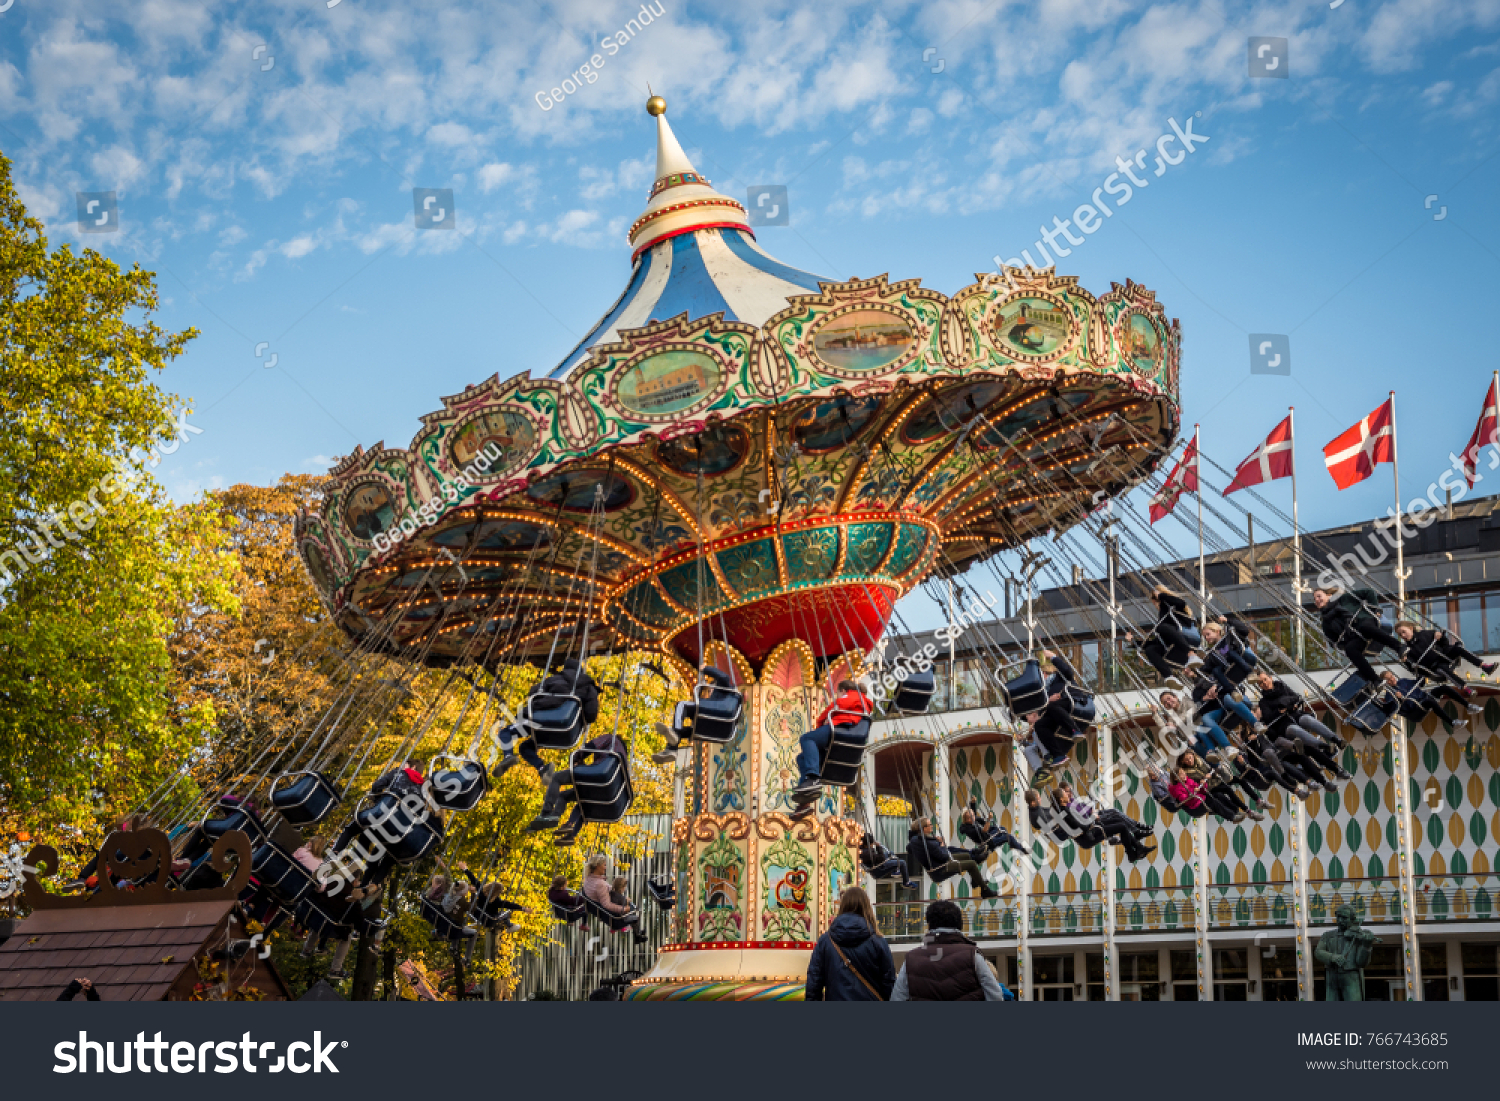 Tivoli Without Rides 19th October 2017 Copenhagen Denmark Tivoli Stock Photo Edit Now